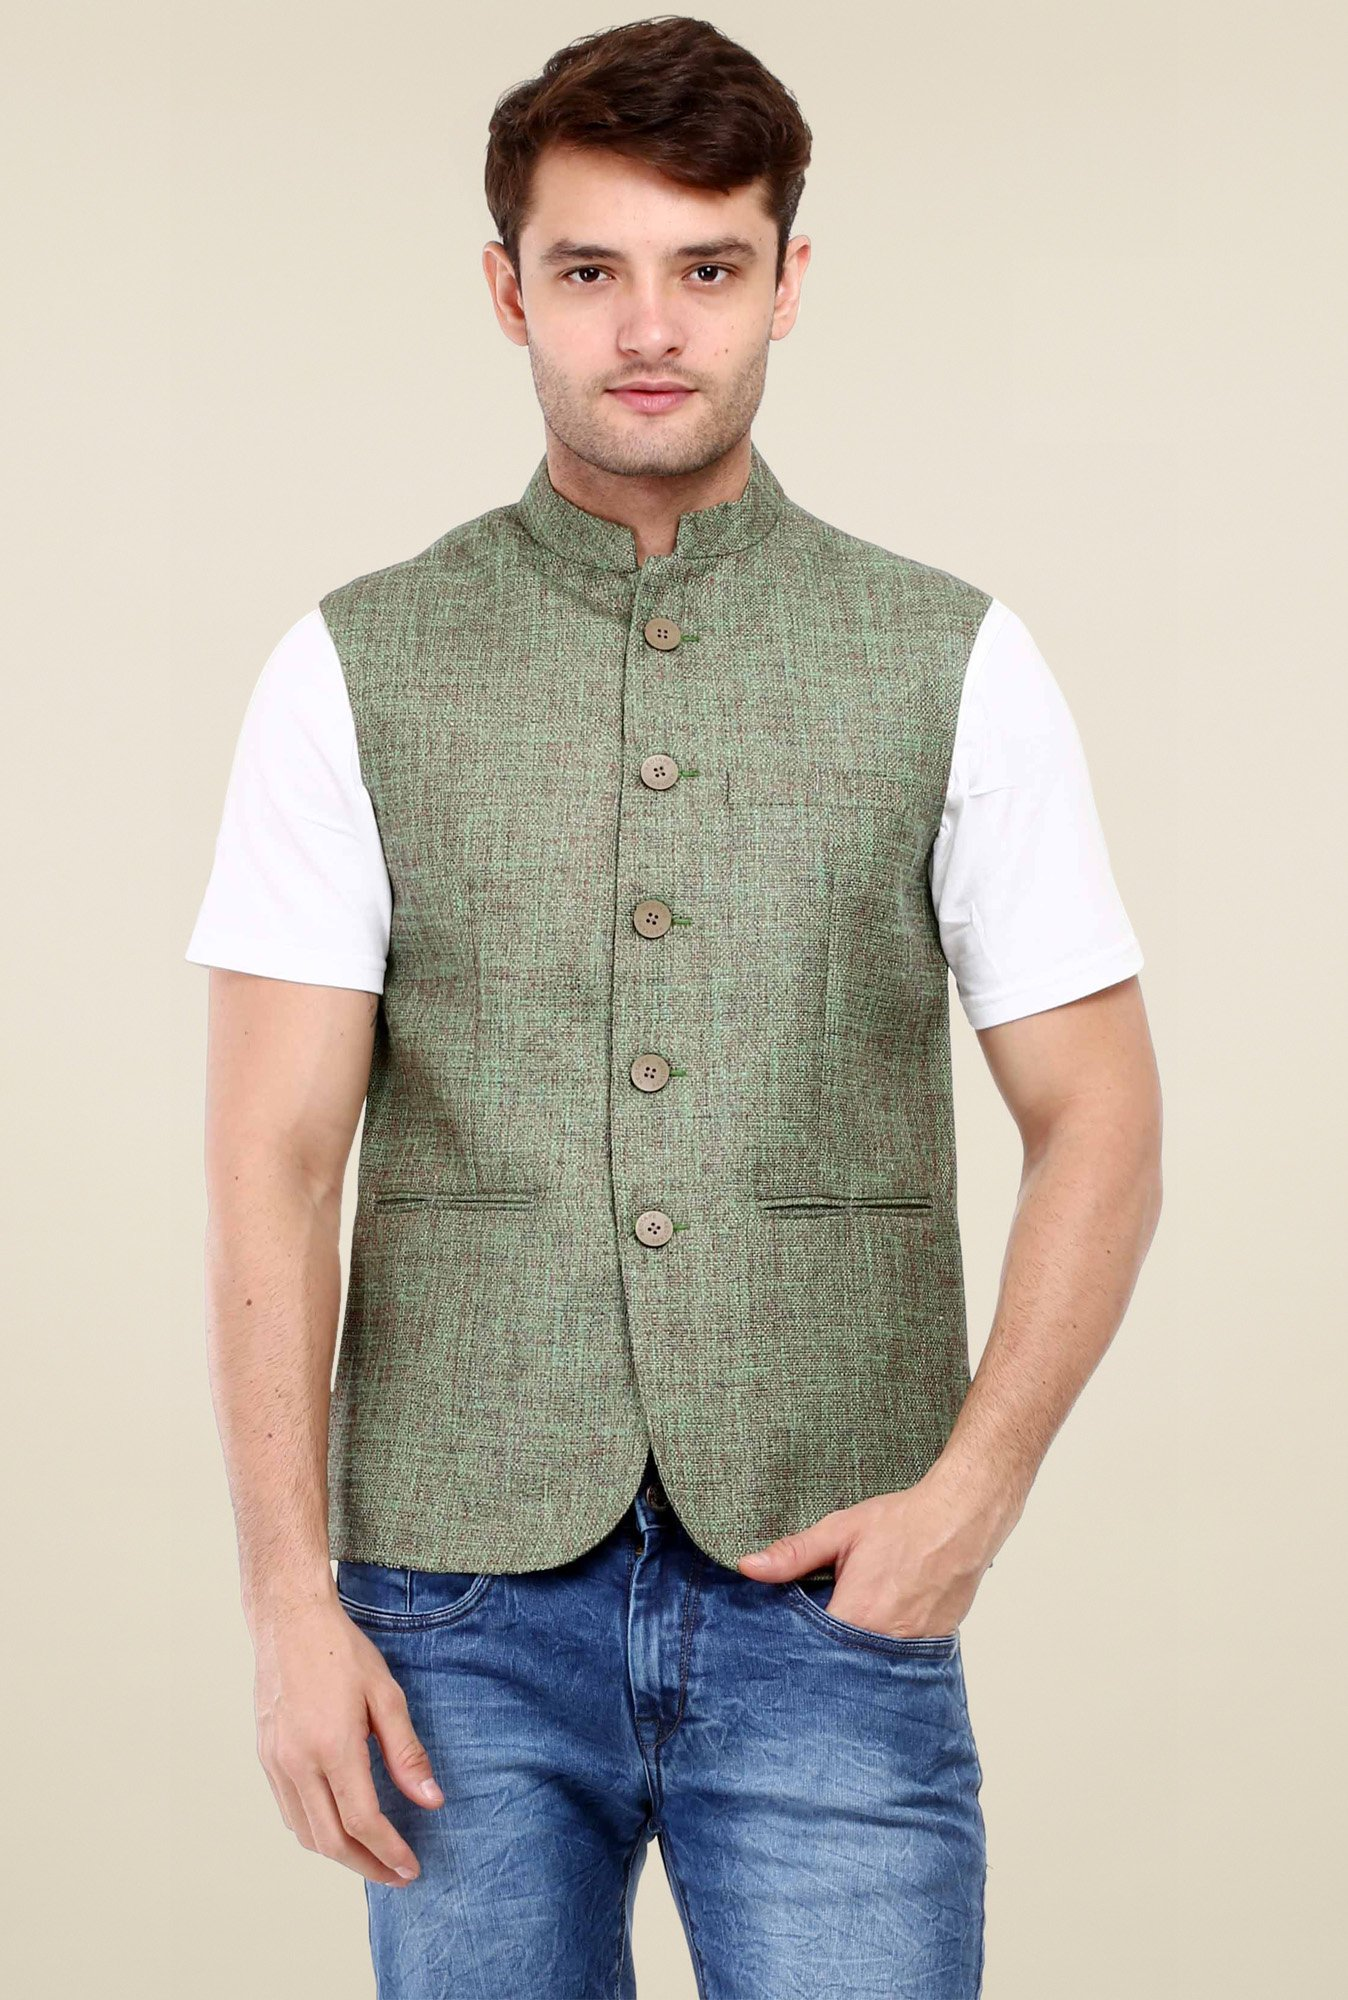 40b24a5fe9aa93 Buy Red Tape Green Sleeveless Smart Fit Nehru Jacket for Men ...